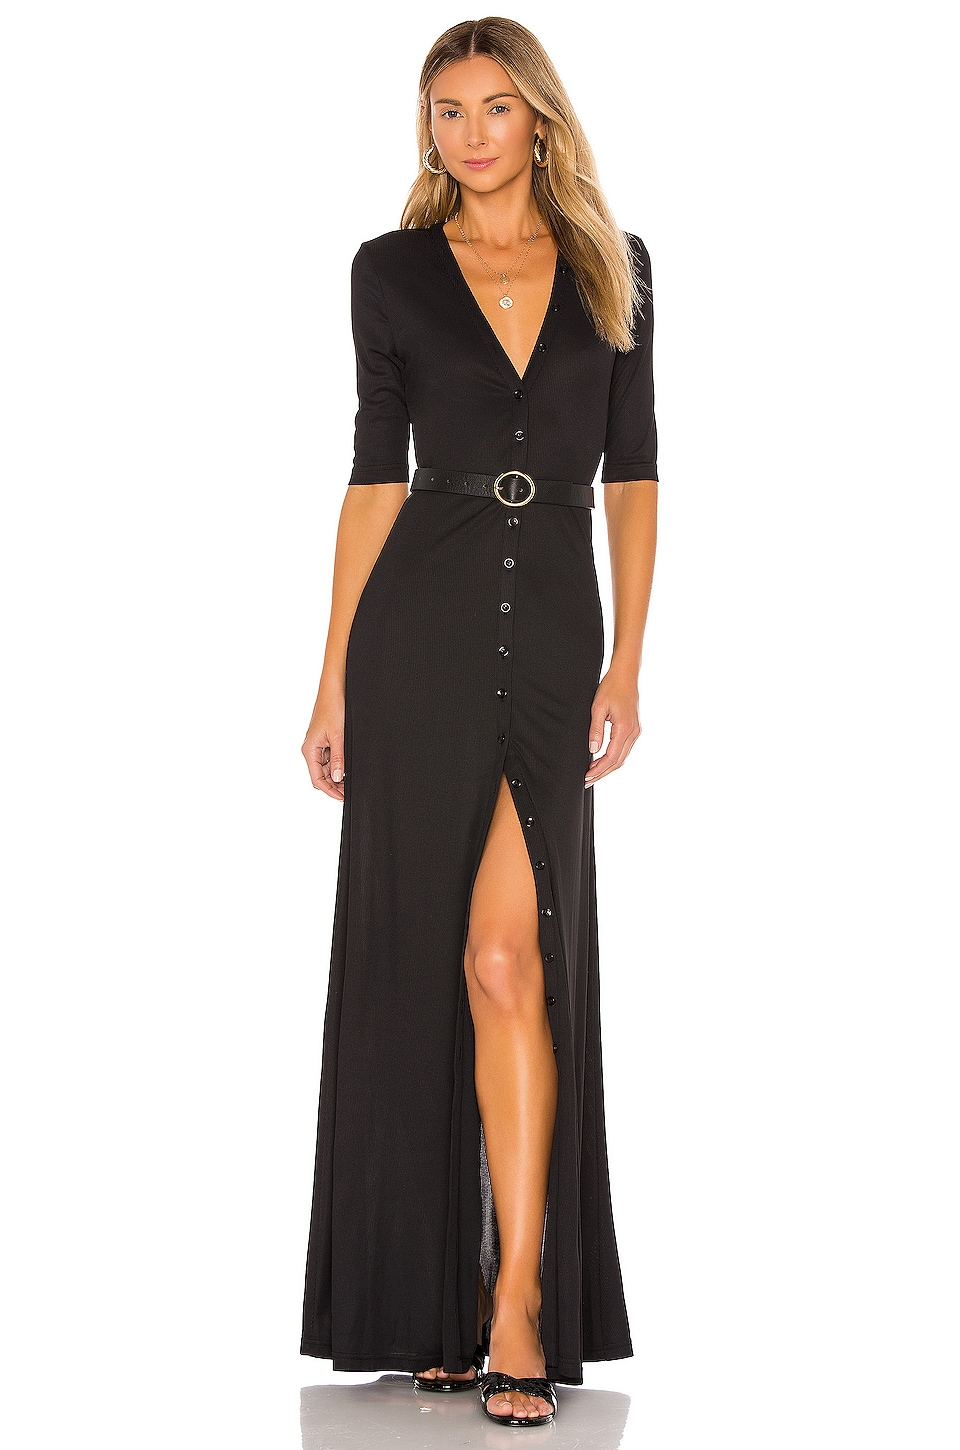 The Esperanza Maxi Dress             L'Academie                                                                                                       CA$ 226.98 20